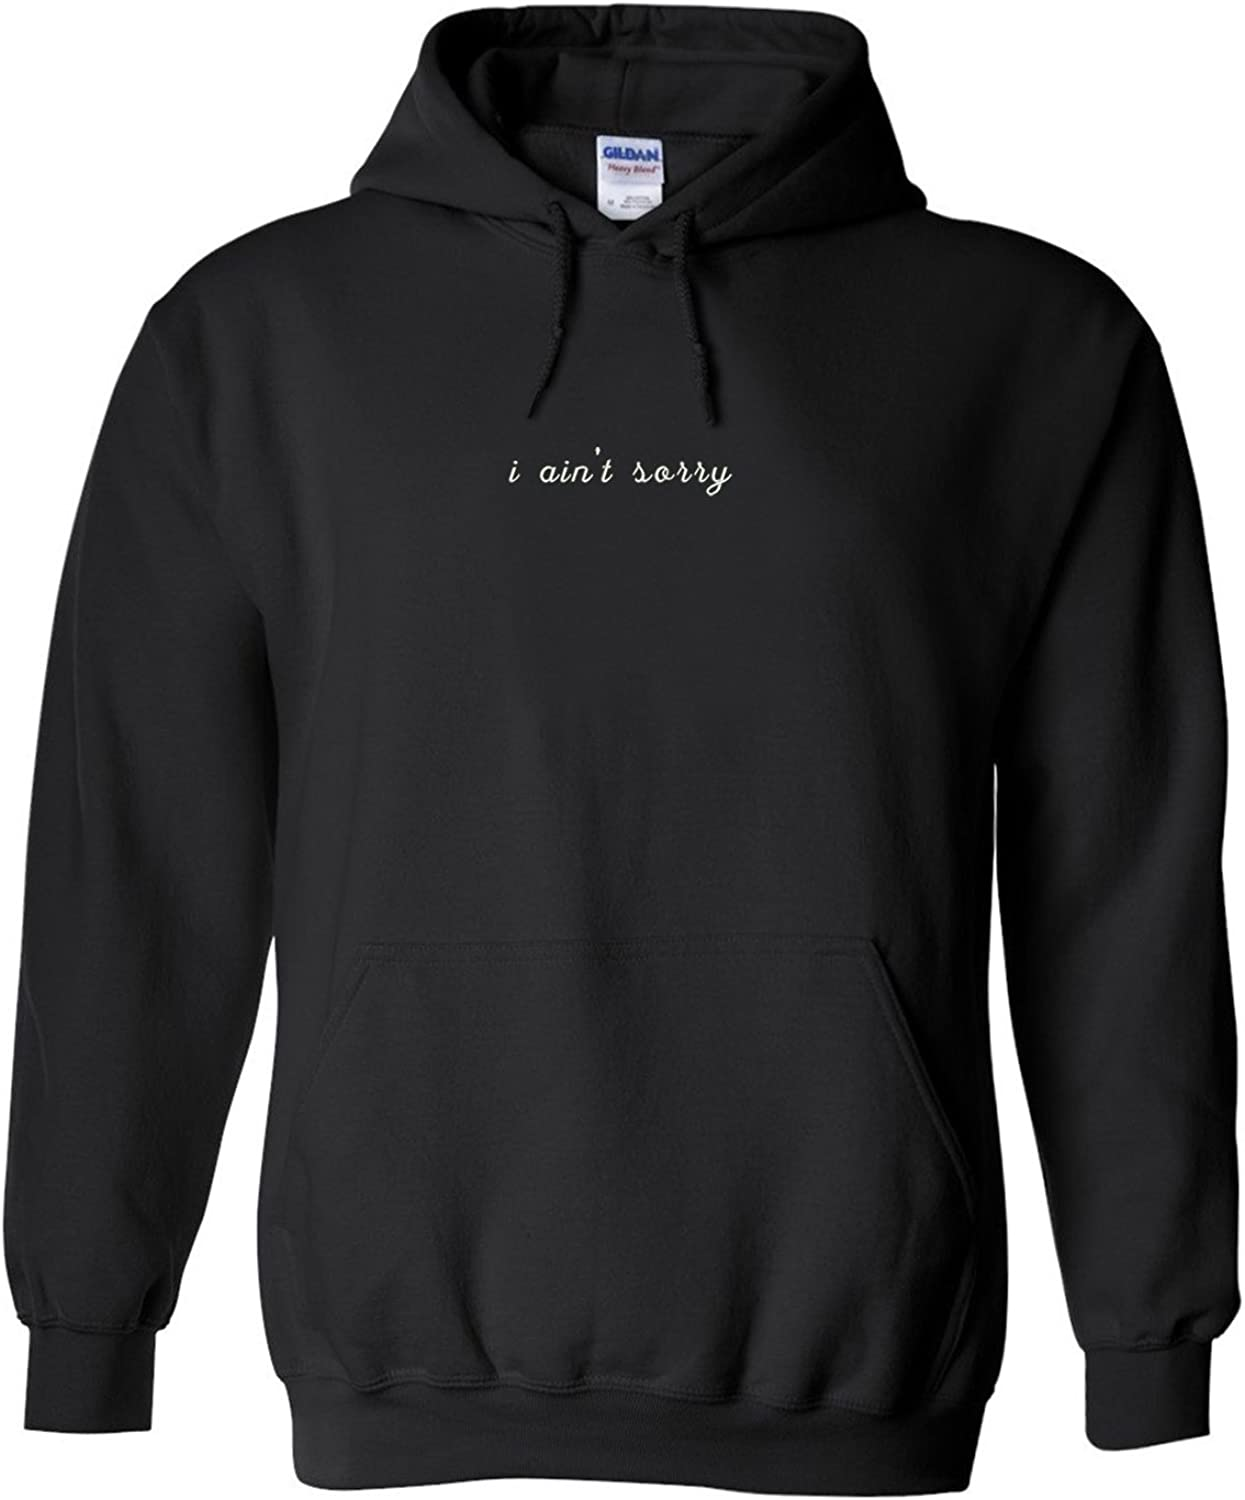 Trendy Apparel Shop I Ain't Sorry Embroidered Heavy Blend Hoodie